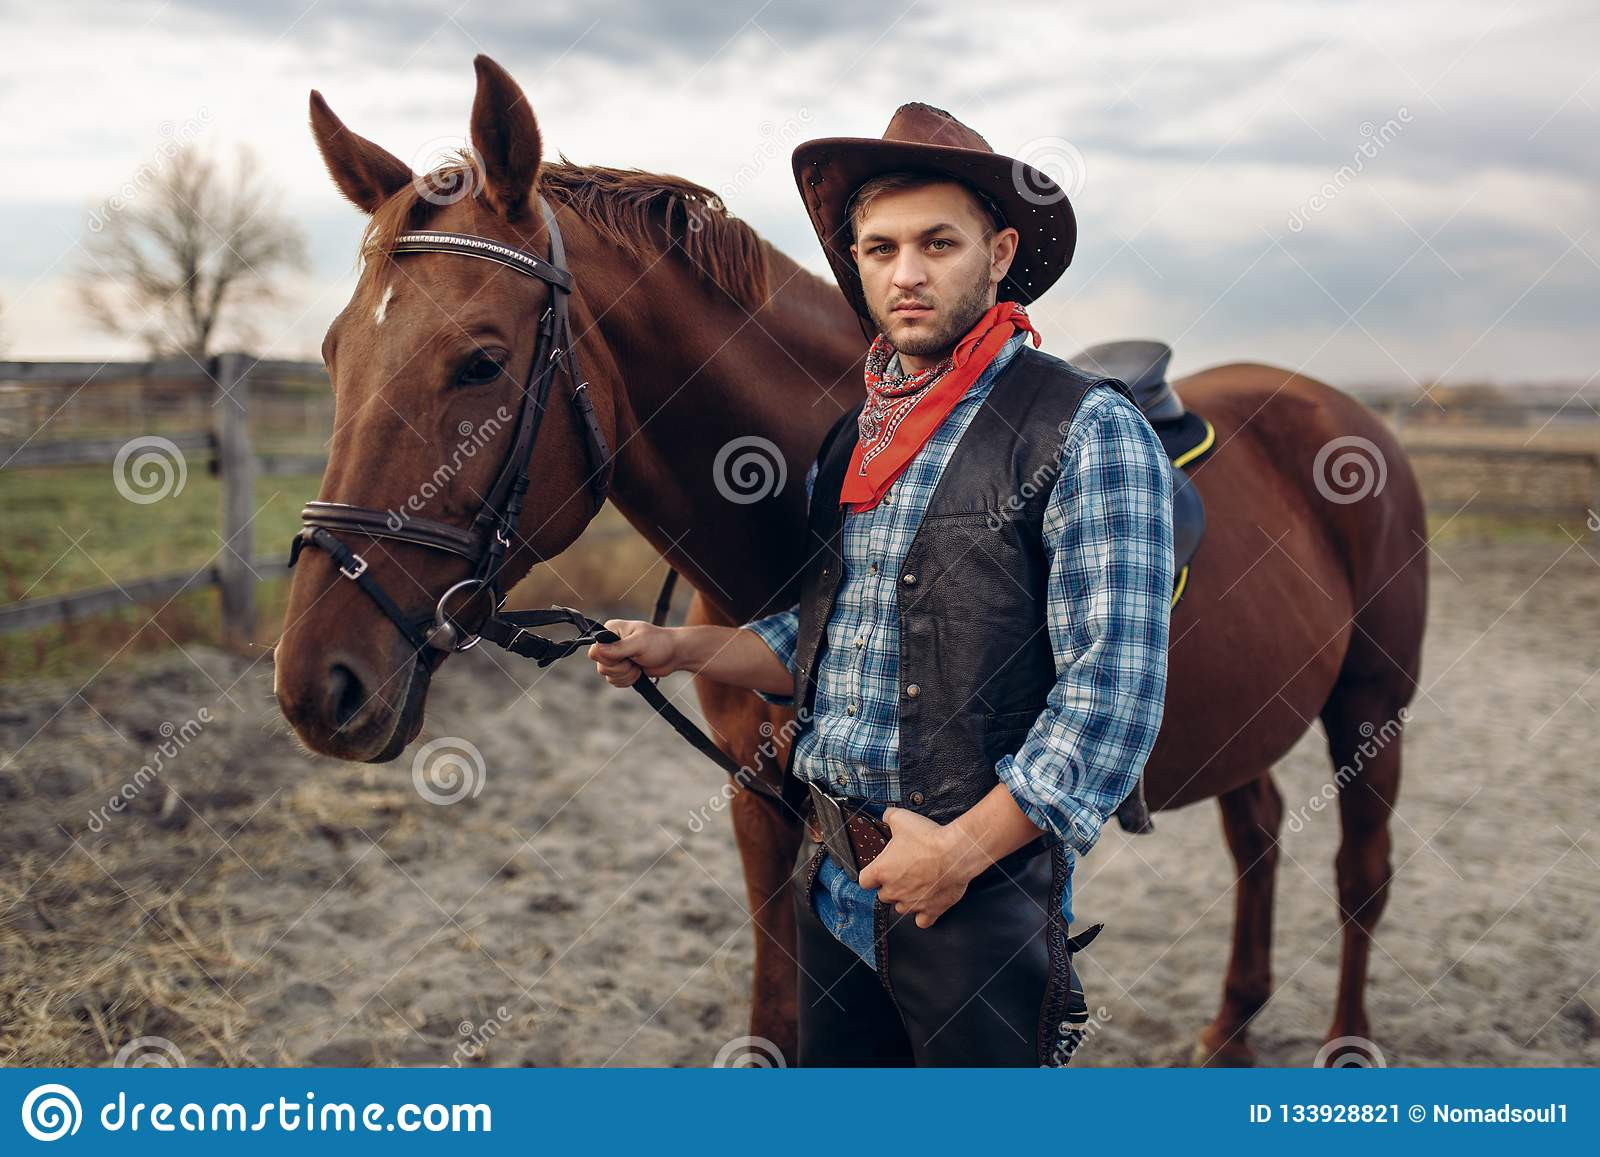 Cowboy Poses With Horse On Texas Farm Stock Image Image Of American People 133928821